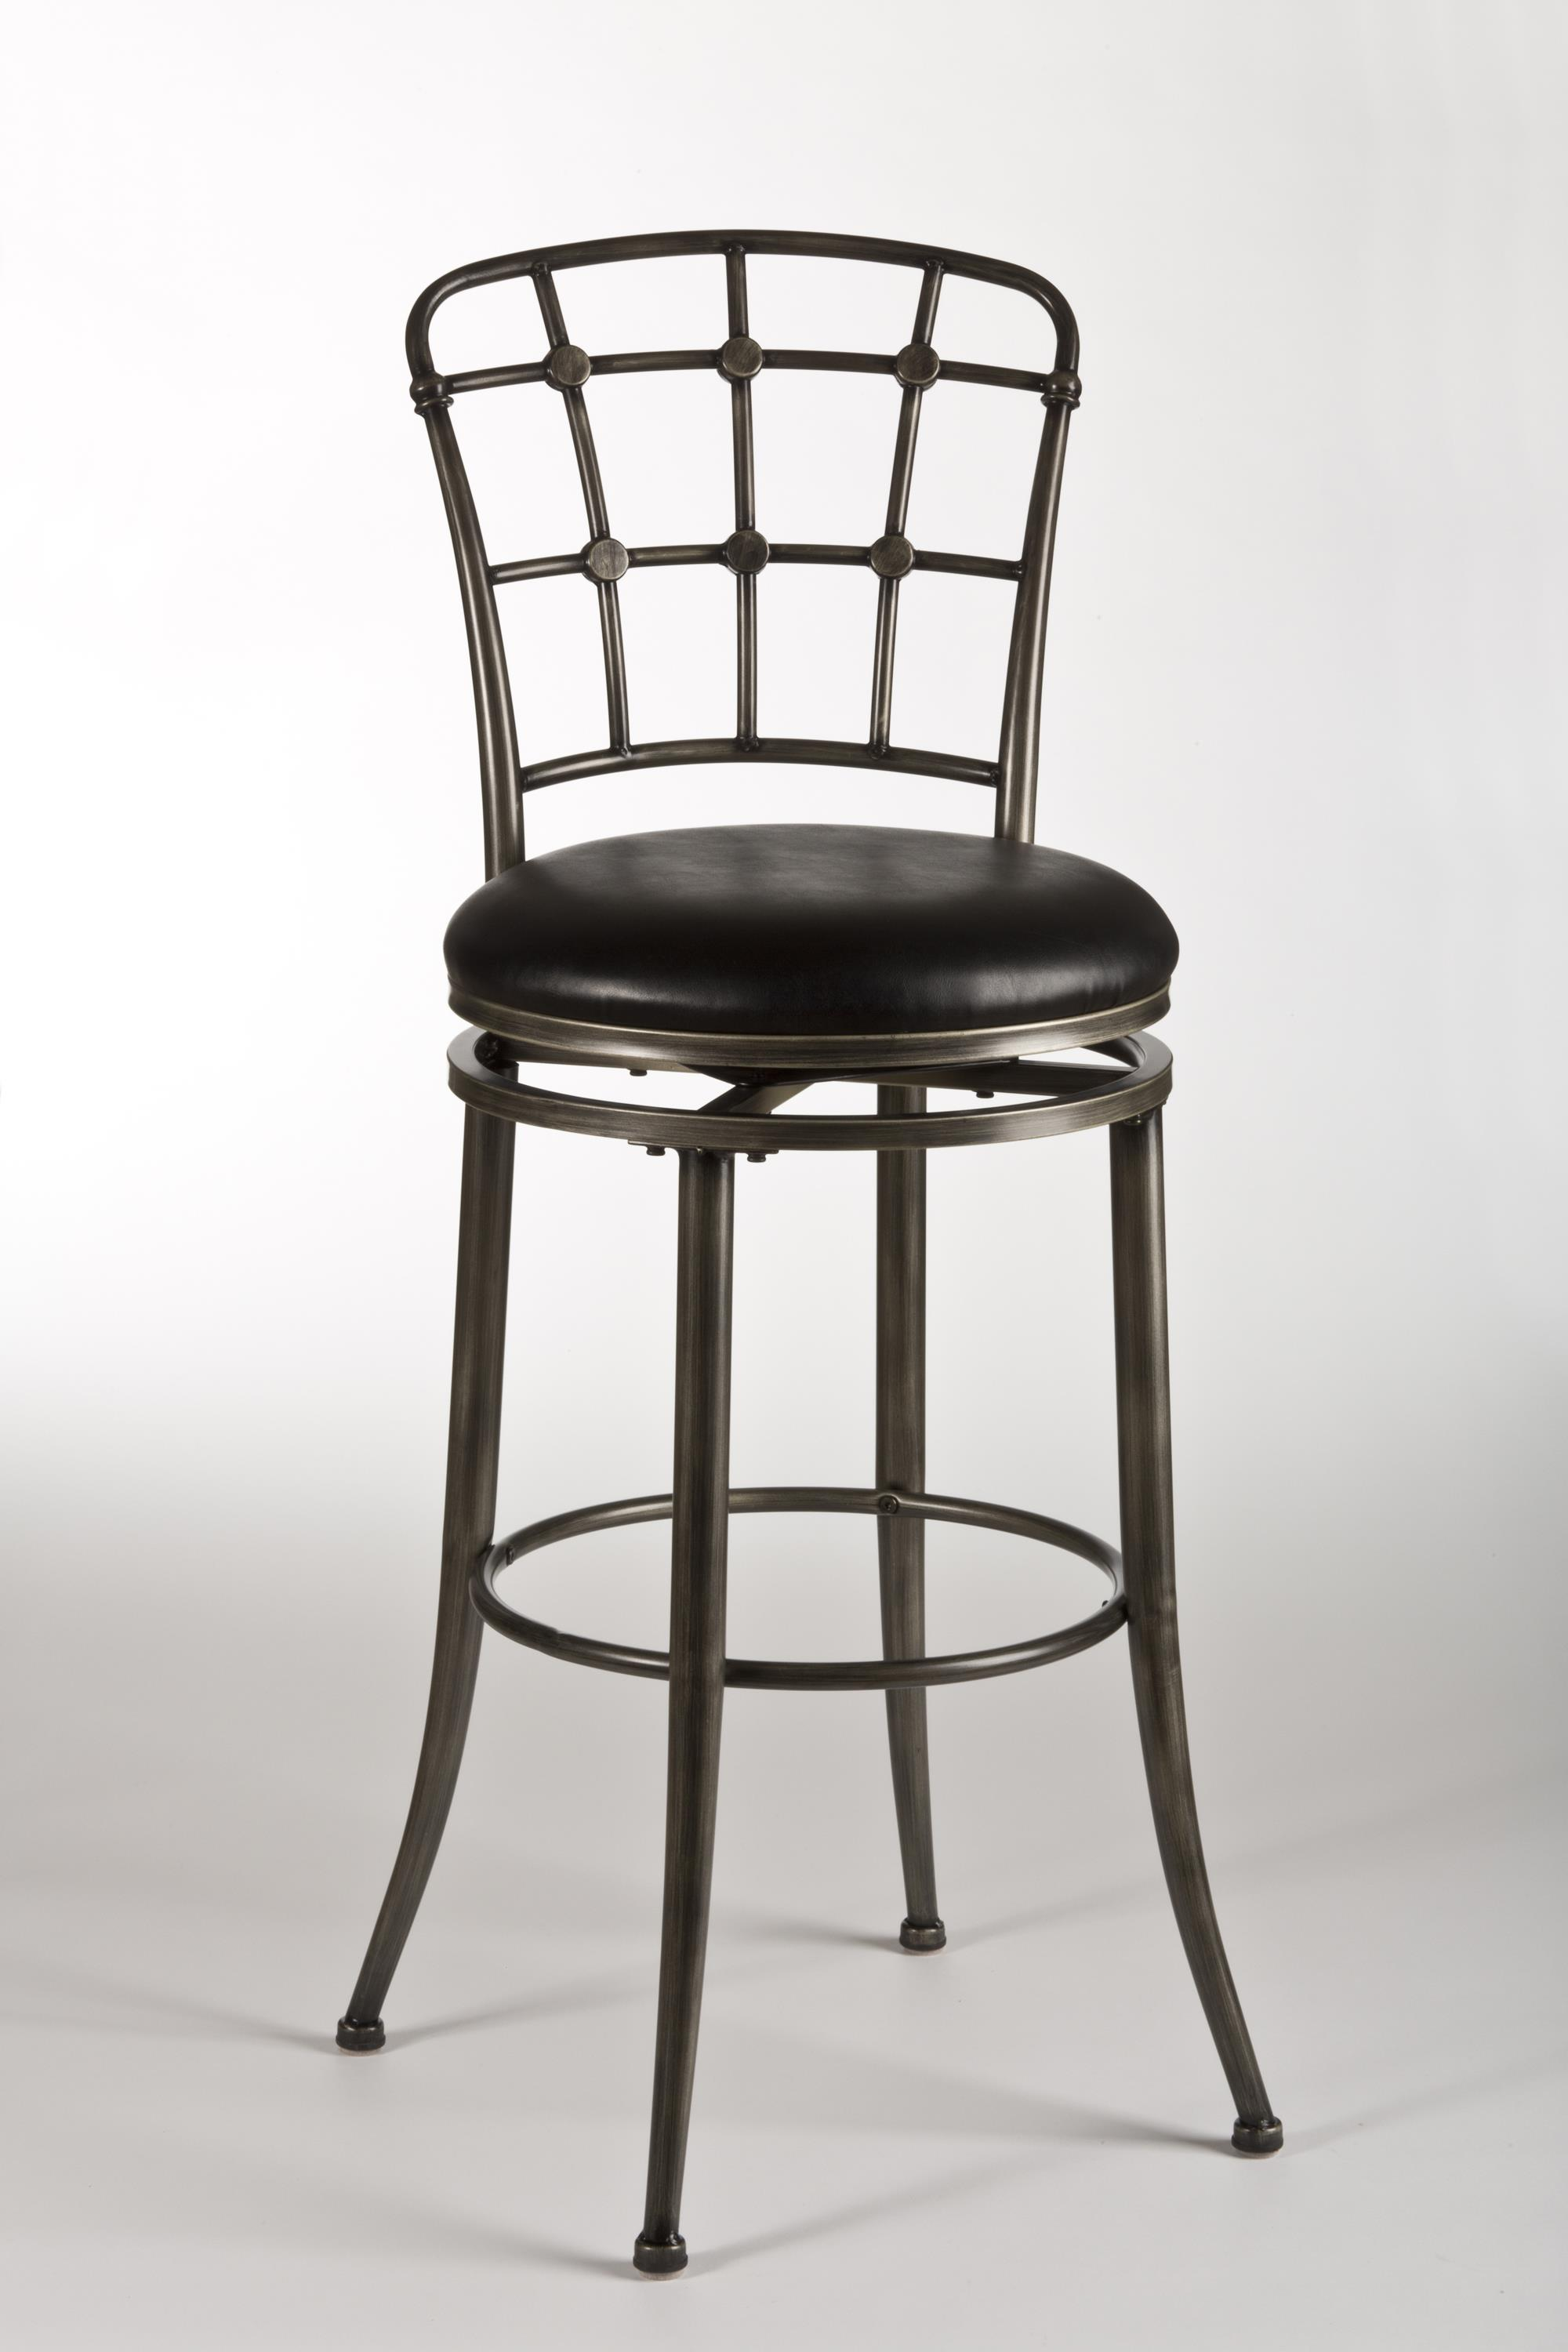 Wonderful image of Metal Stools Claymont Swivel Counter Stool with Lattice Back by  with #342F28 color and 2000x3000 pixels